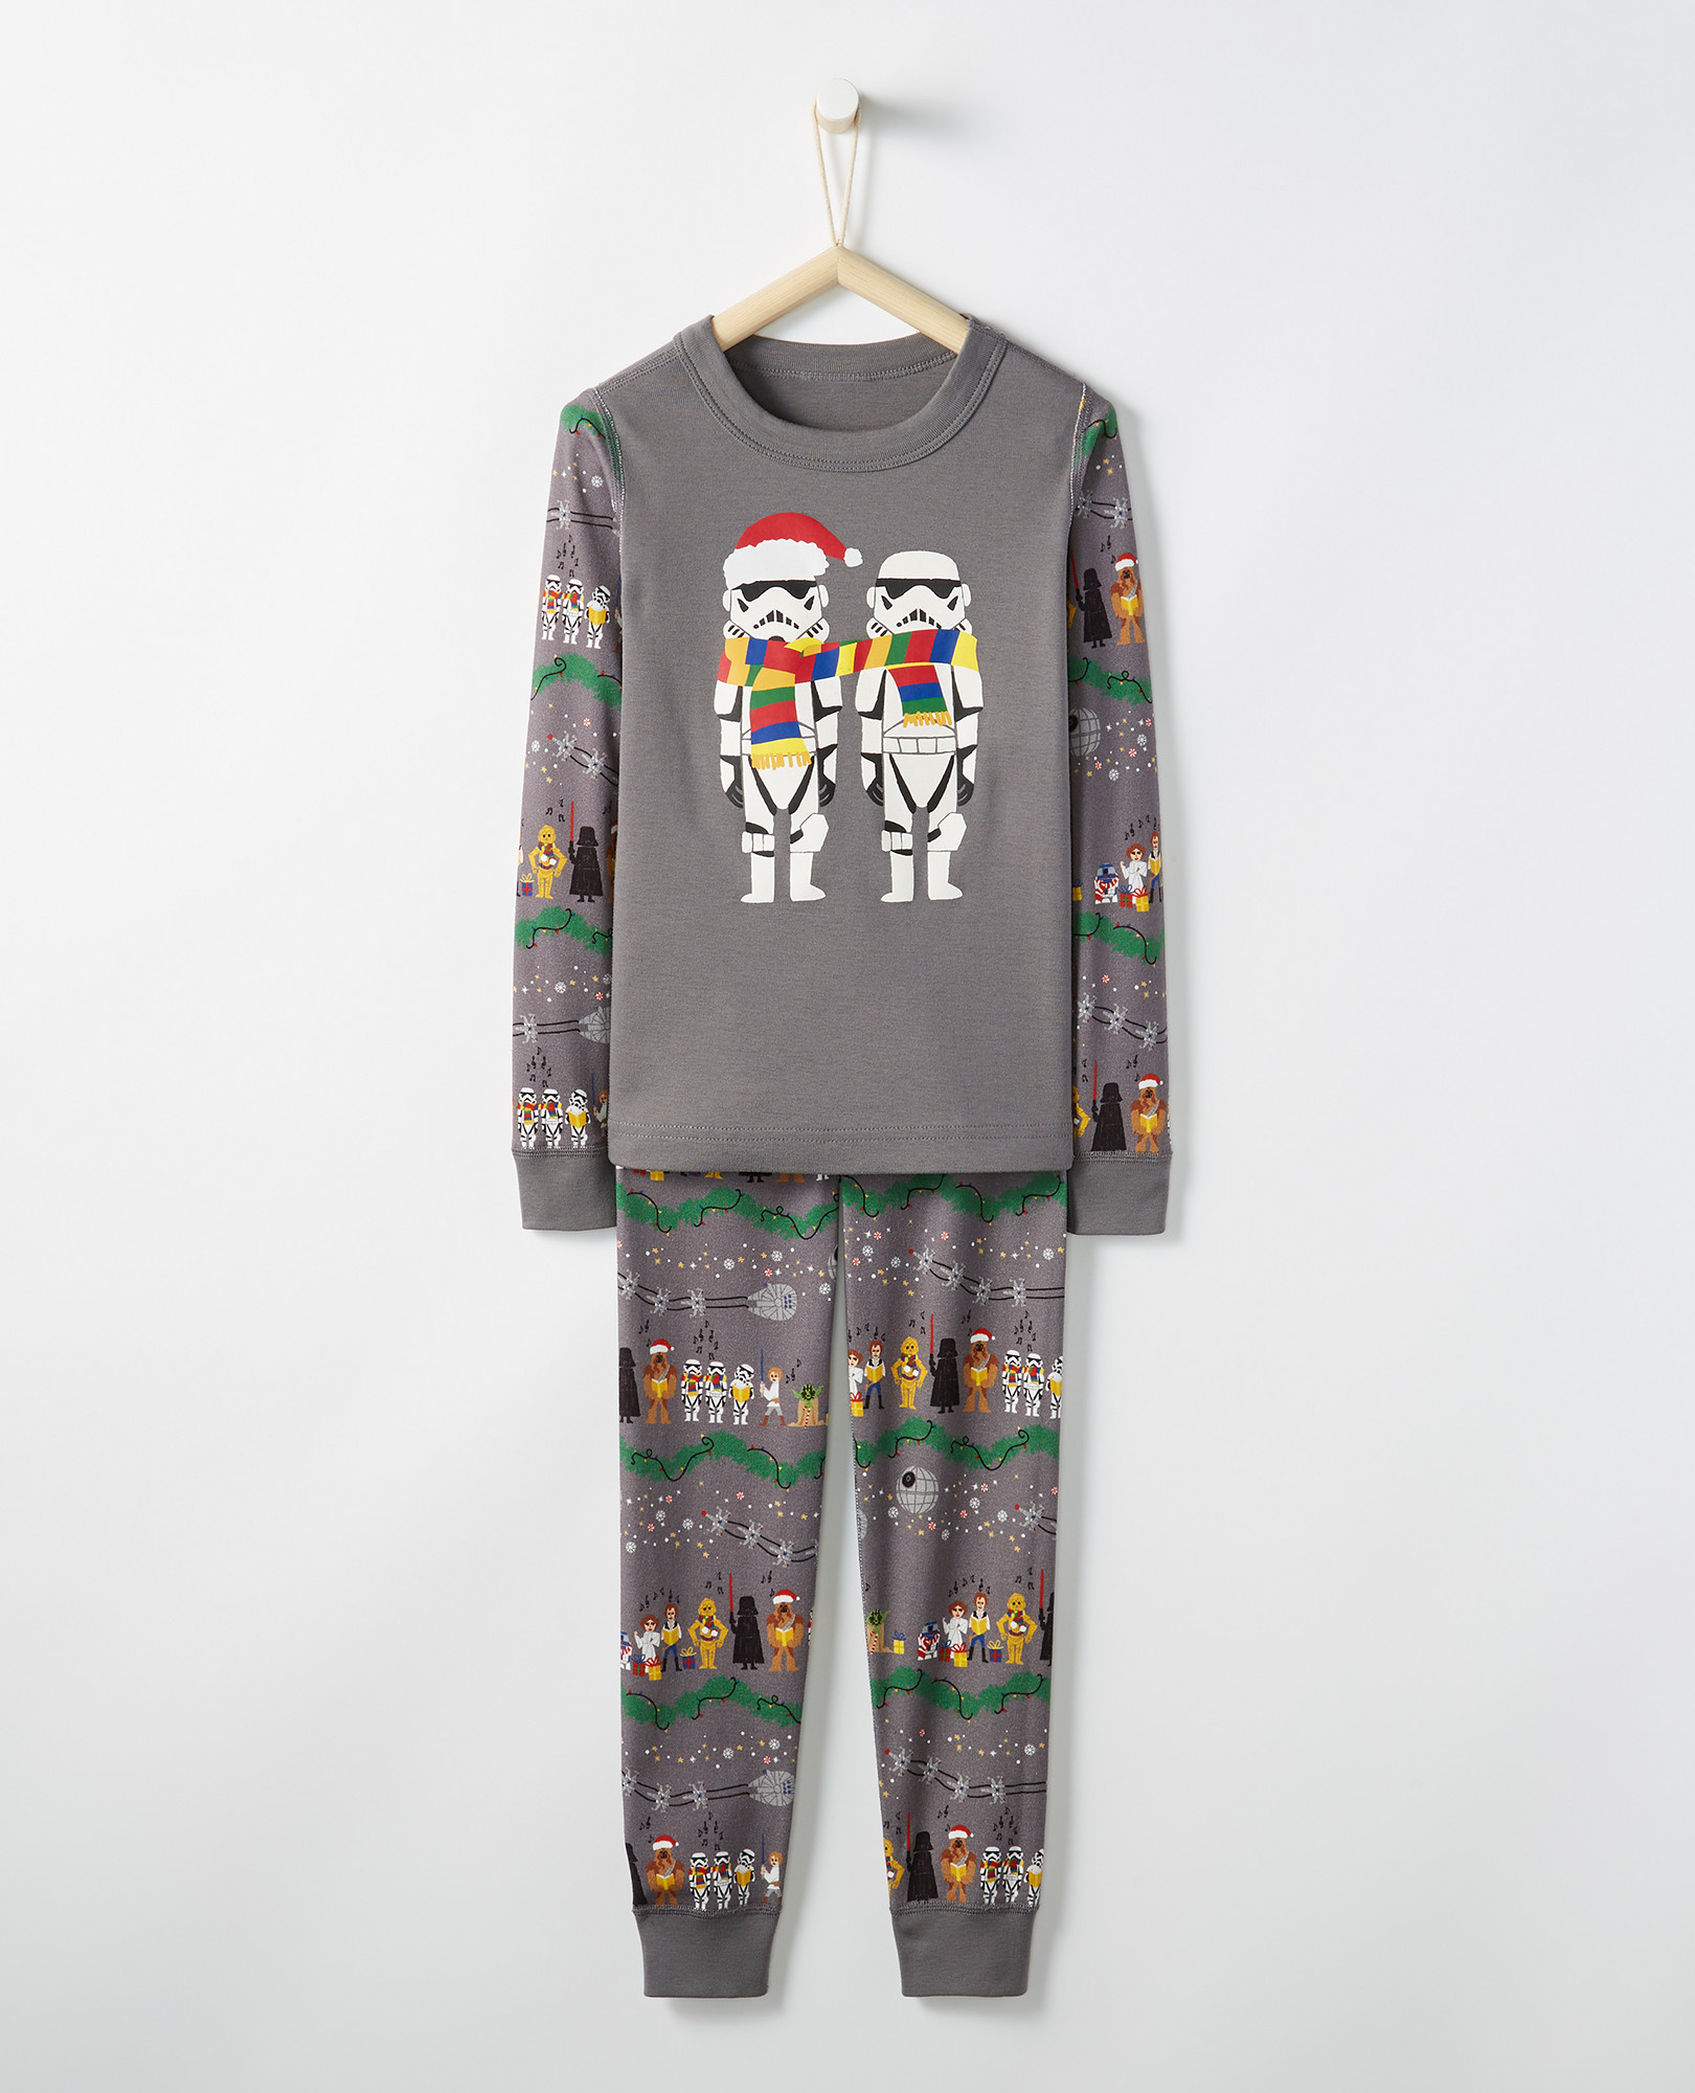 Modern Christmas pajamas for kids: Star Wars pajamas | Hanna Andersson